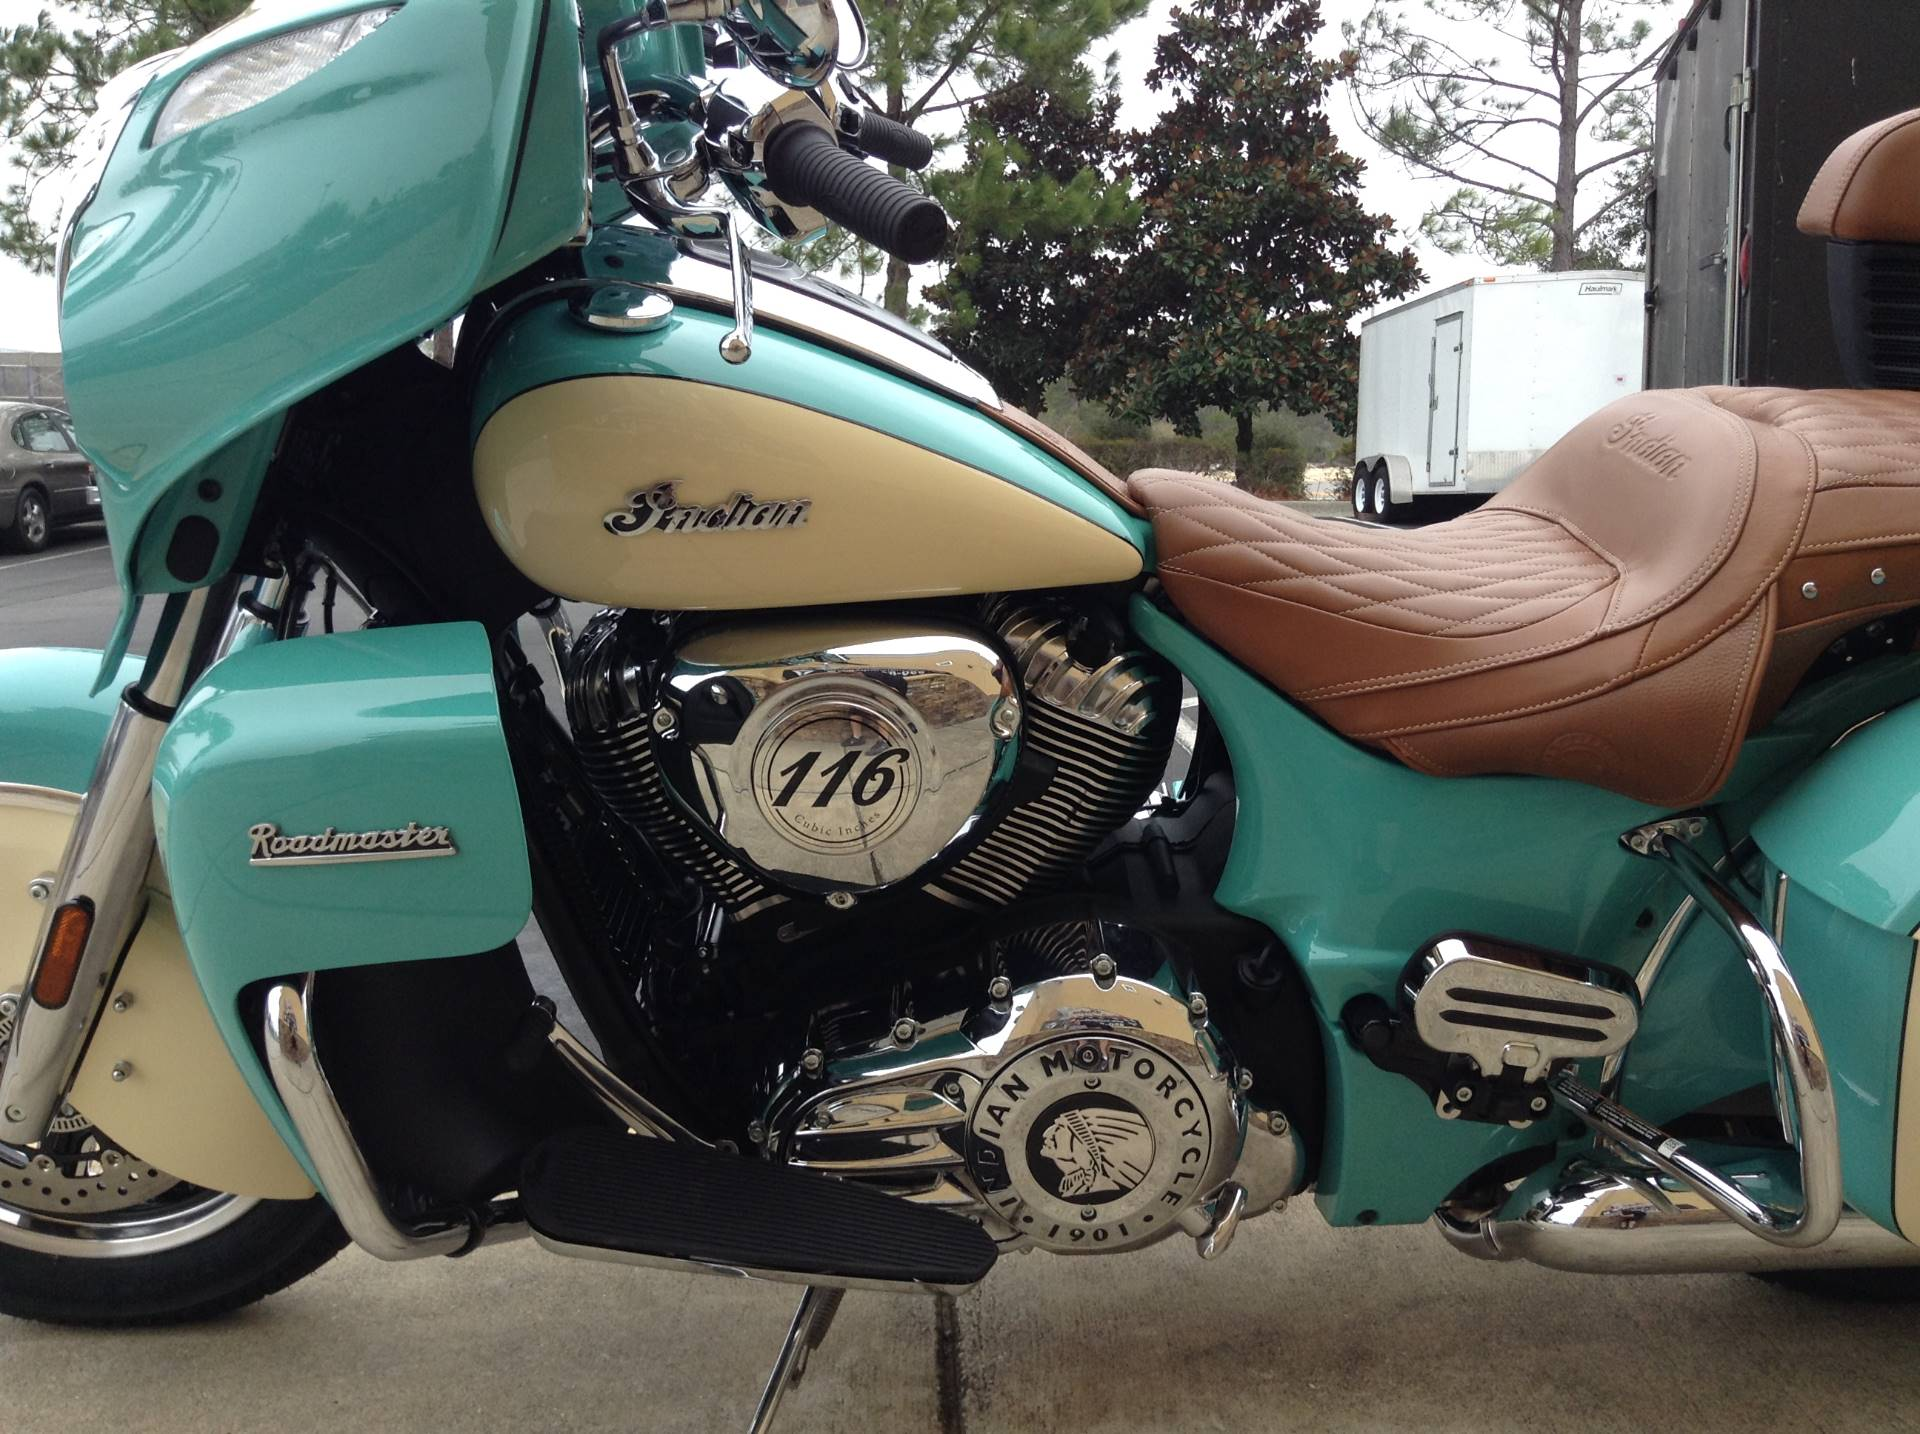 2020 Indian ROAD MASTER ICON SERIES in Panama City Beach, Florida - Photo 11